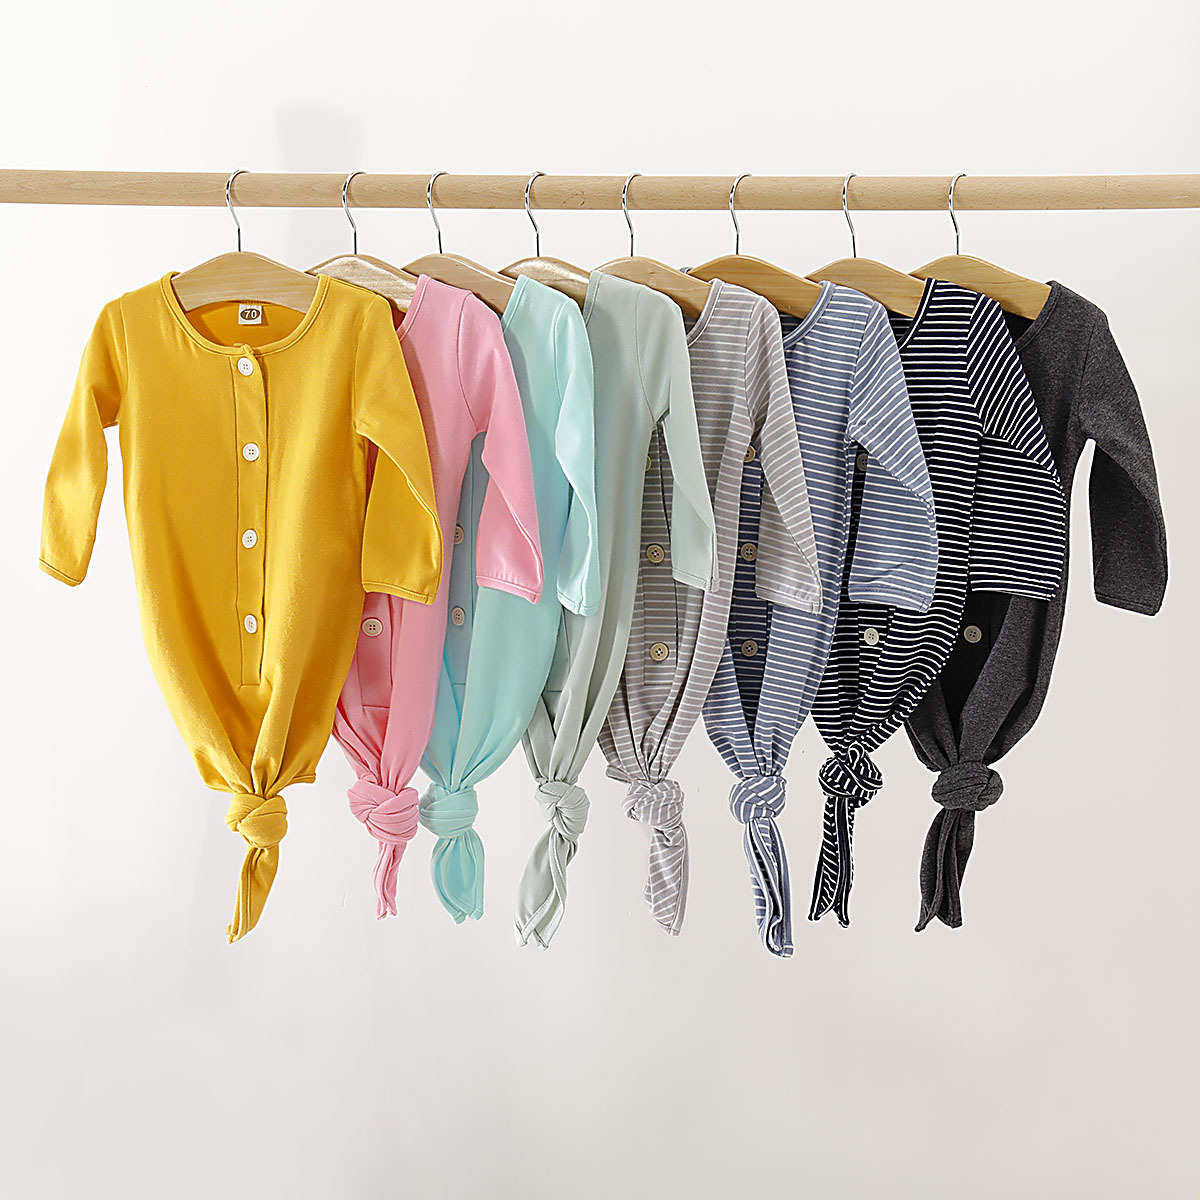 Small Infant Children's Clothing Pajamas Eight-Color Pure Cotton Sleeping Bag Romper